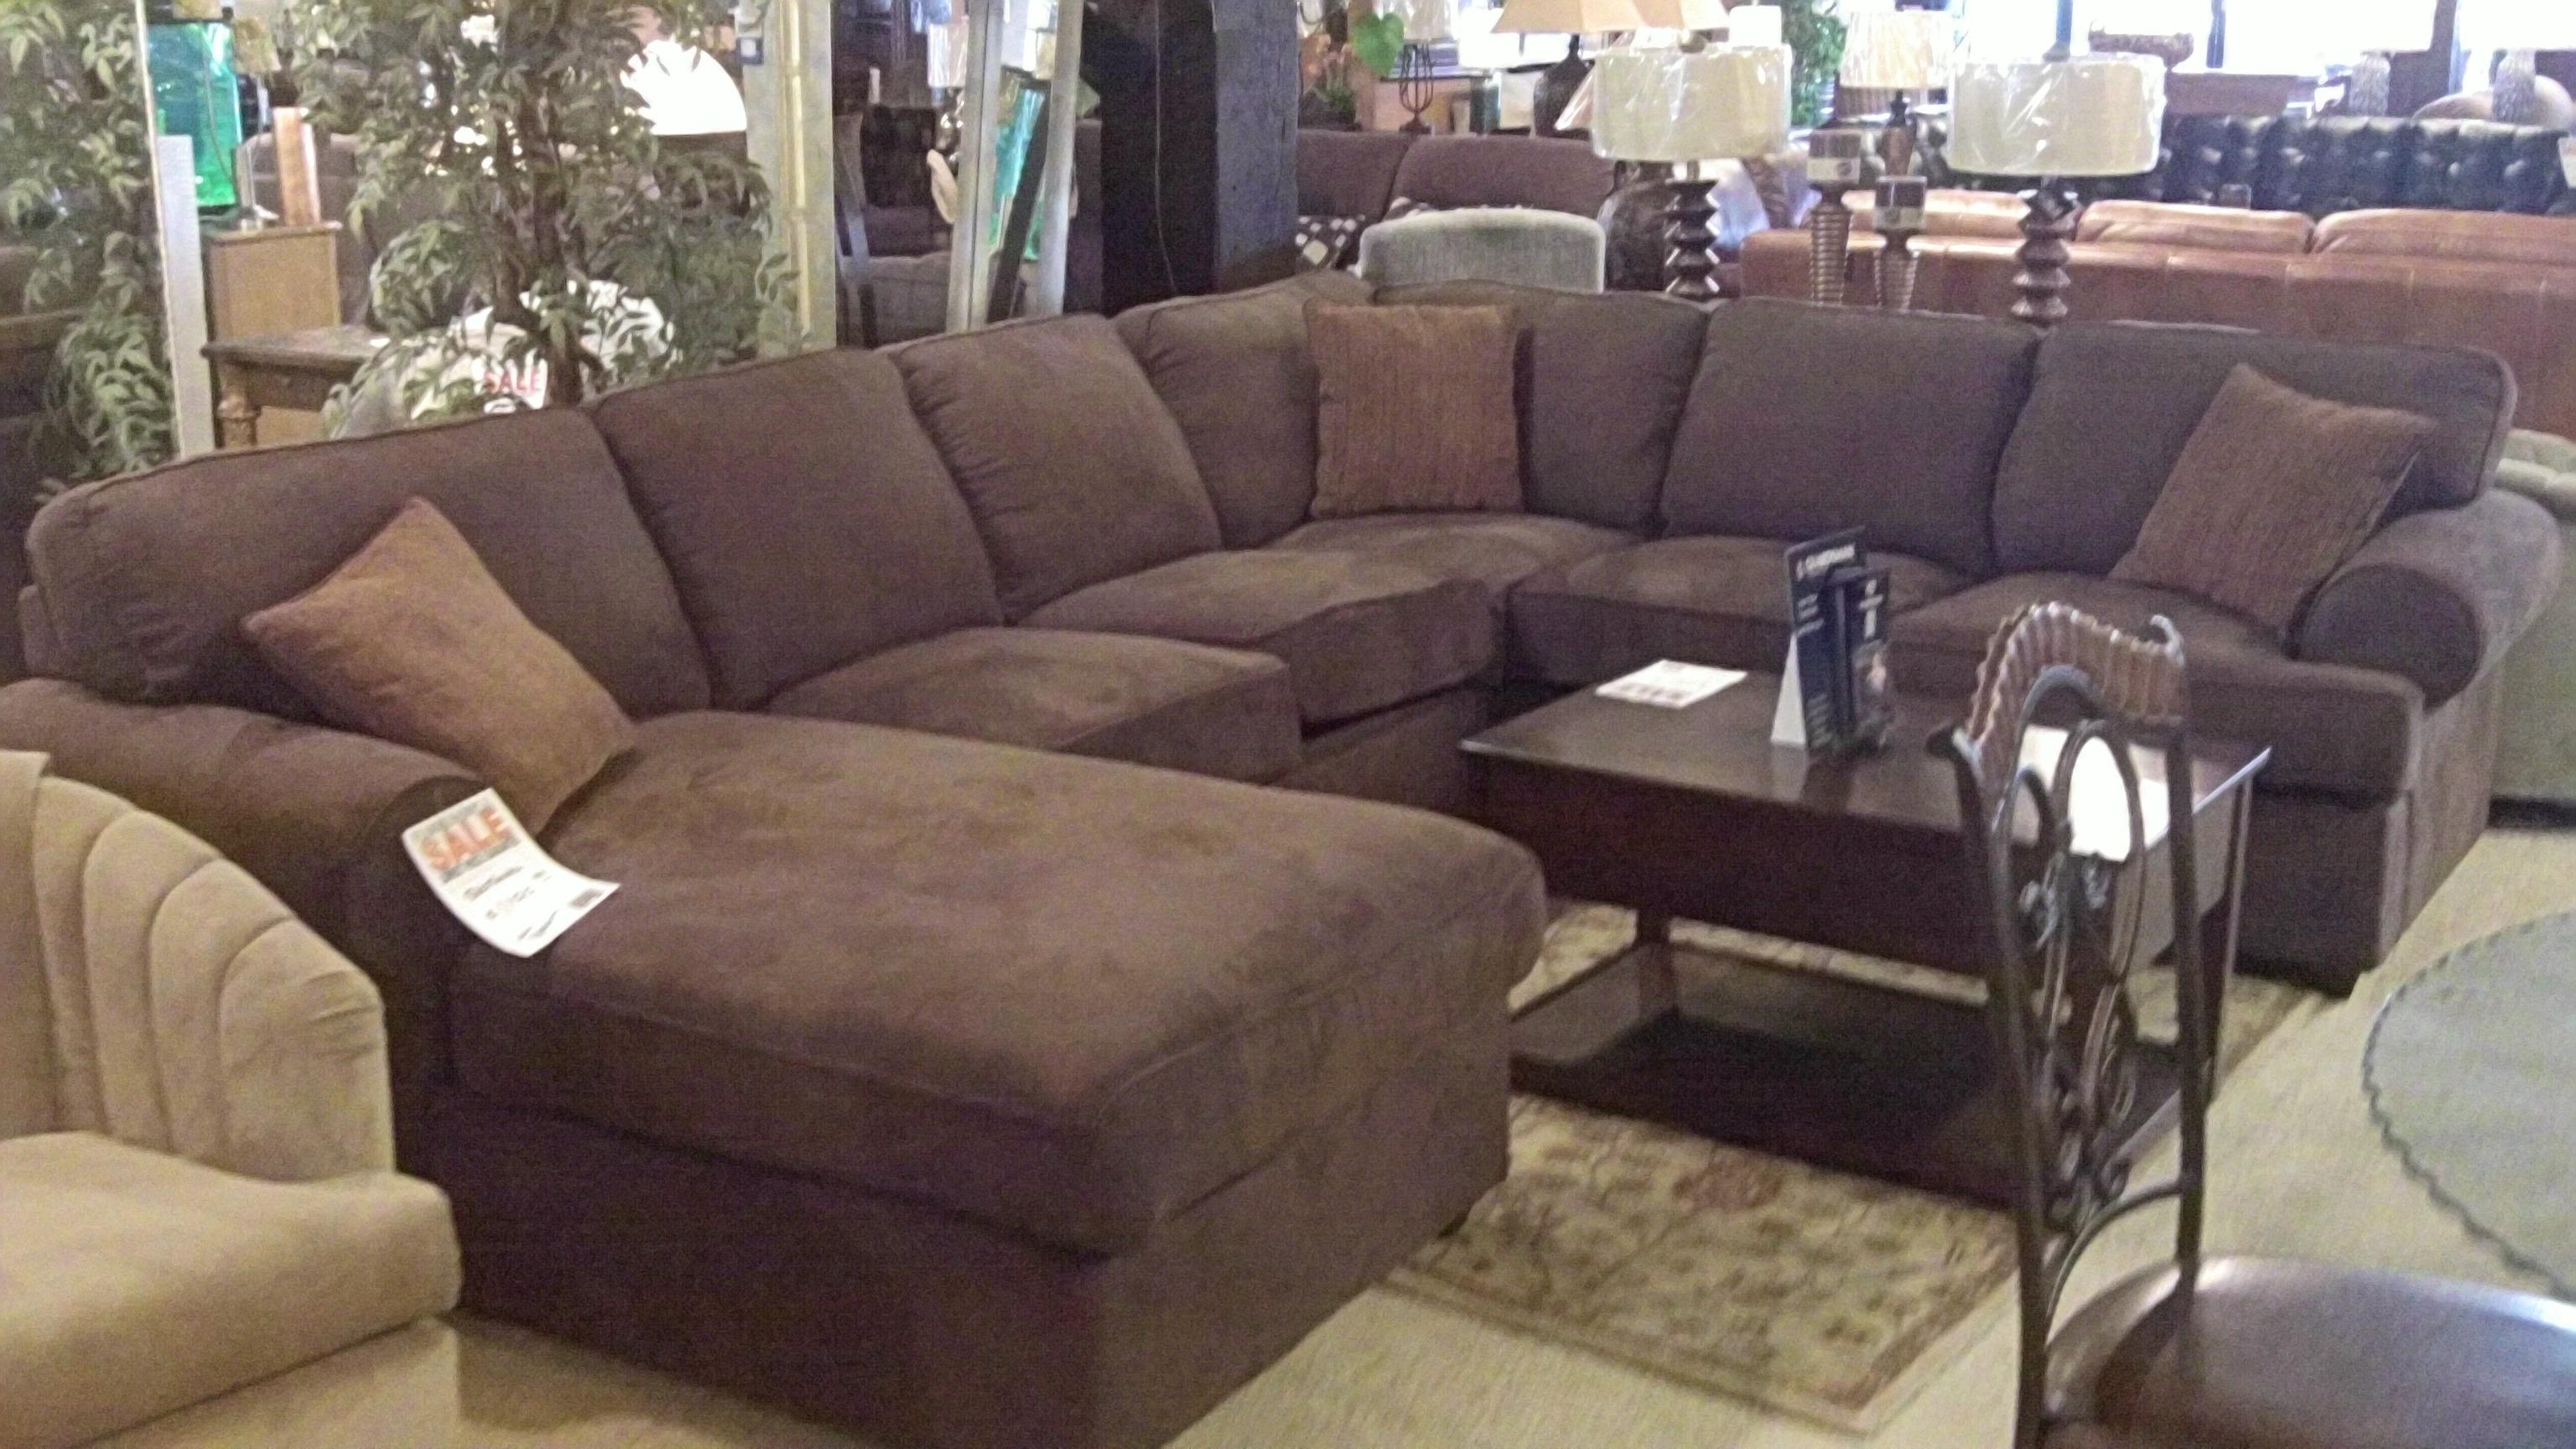 15 Collection Of Down Filled Sectional Sofa | Sofa Ideas Within Down Sectional Sofas (Photo 5 of 10)